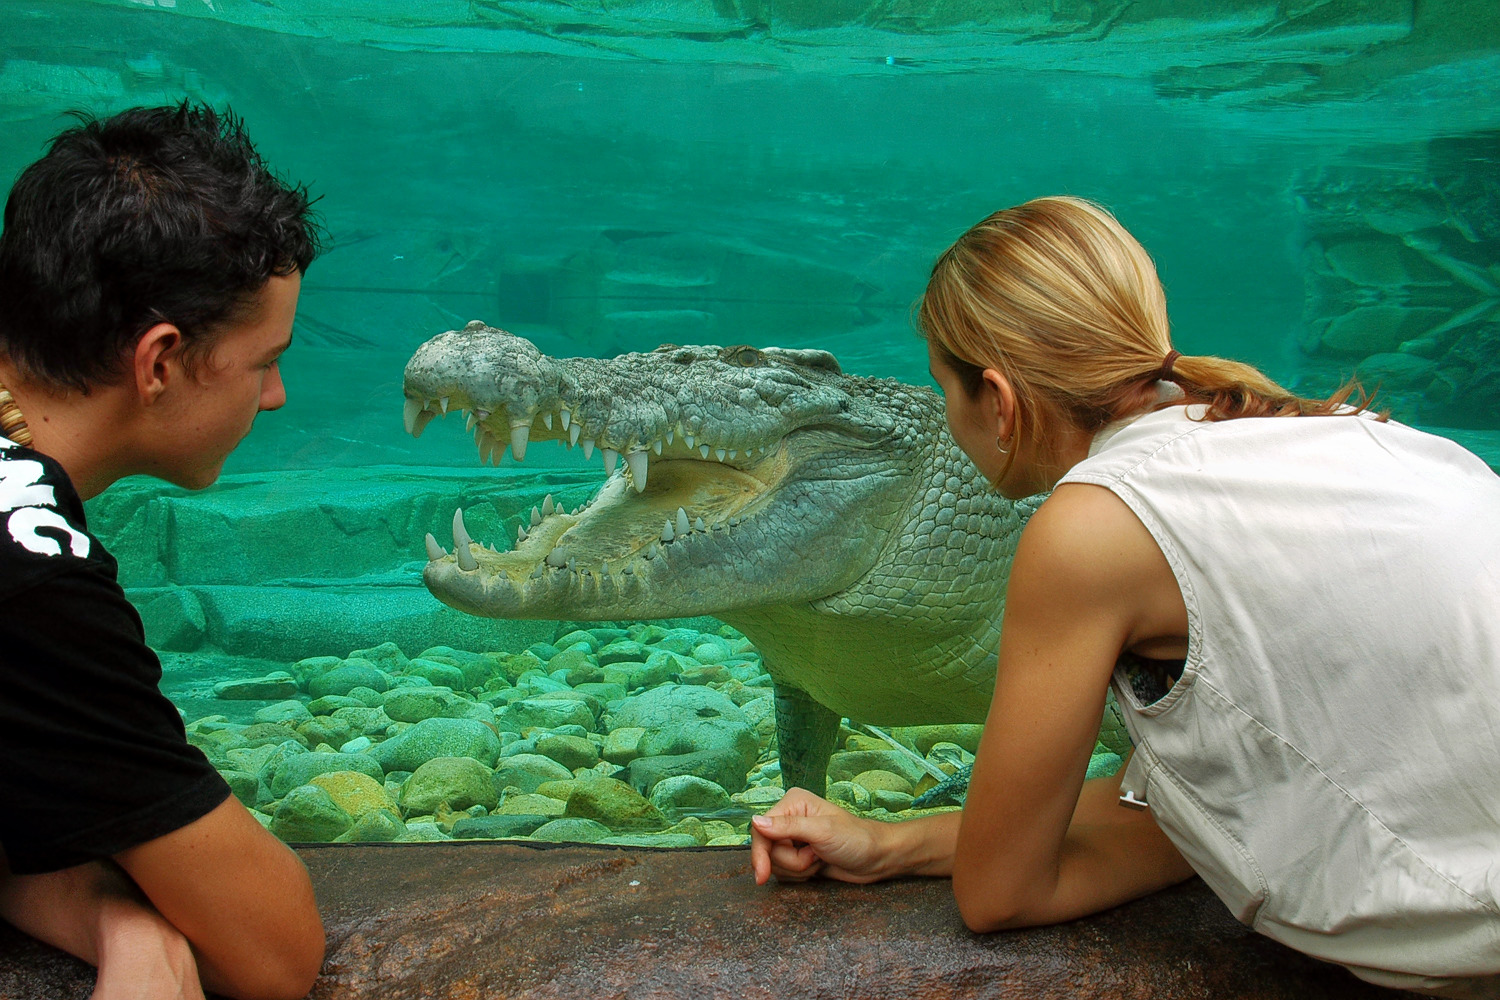 1598940208_cairns_zoom_and_wildlife_dome_goliath_boy_and_girl_(1).jpg